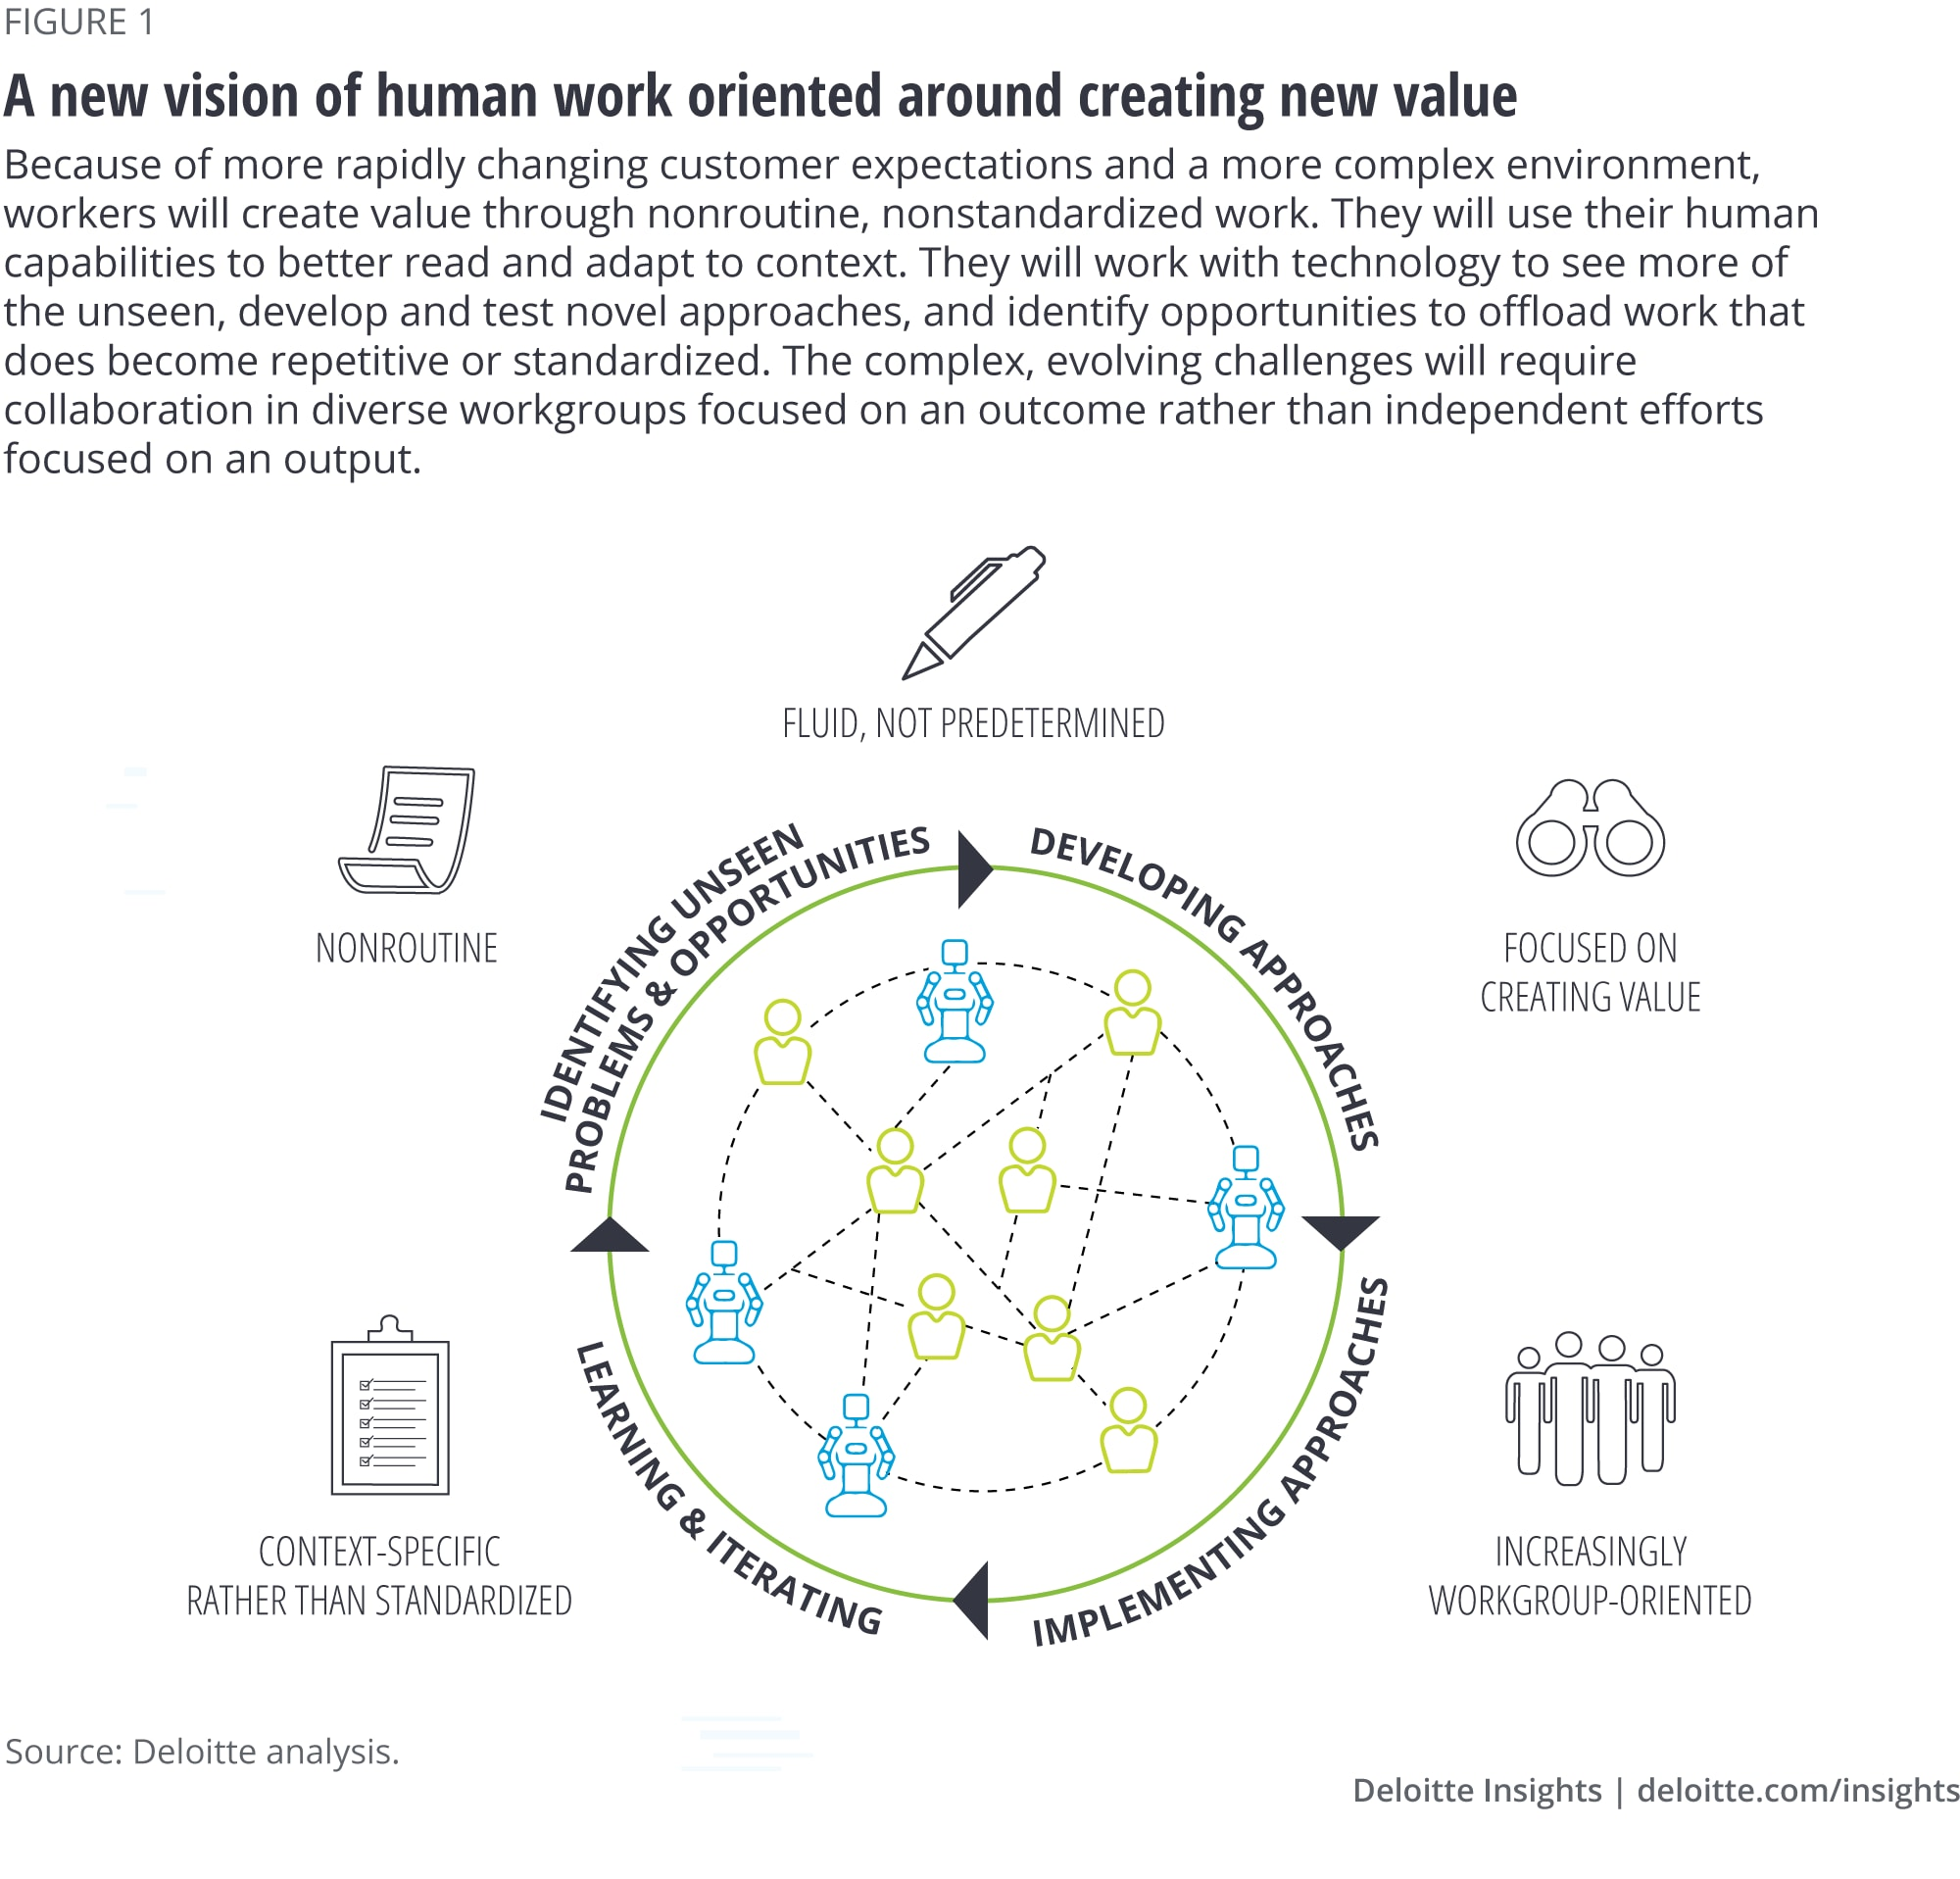 A vision of human work oriented around creating new value